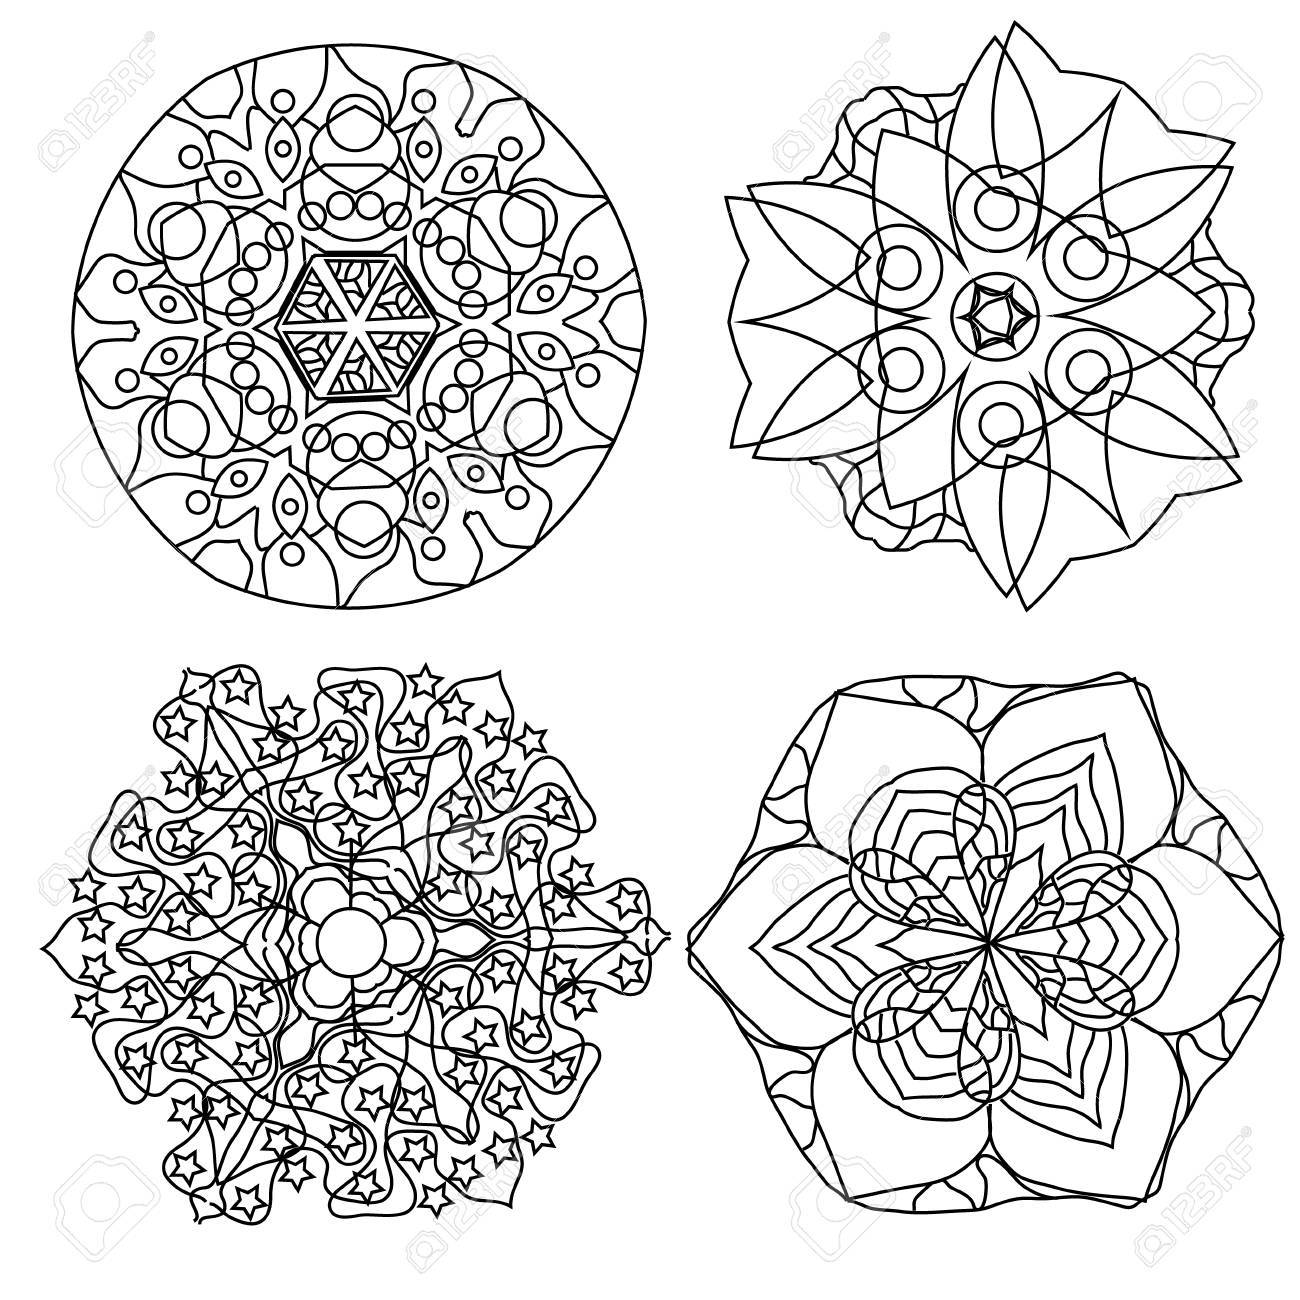 Adult Coloring Book | Art Therapy Volume 2 - Printable PDF ... | 1300x1300